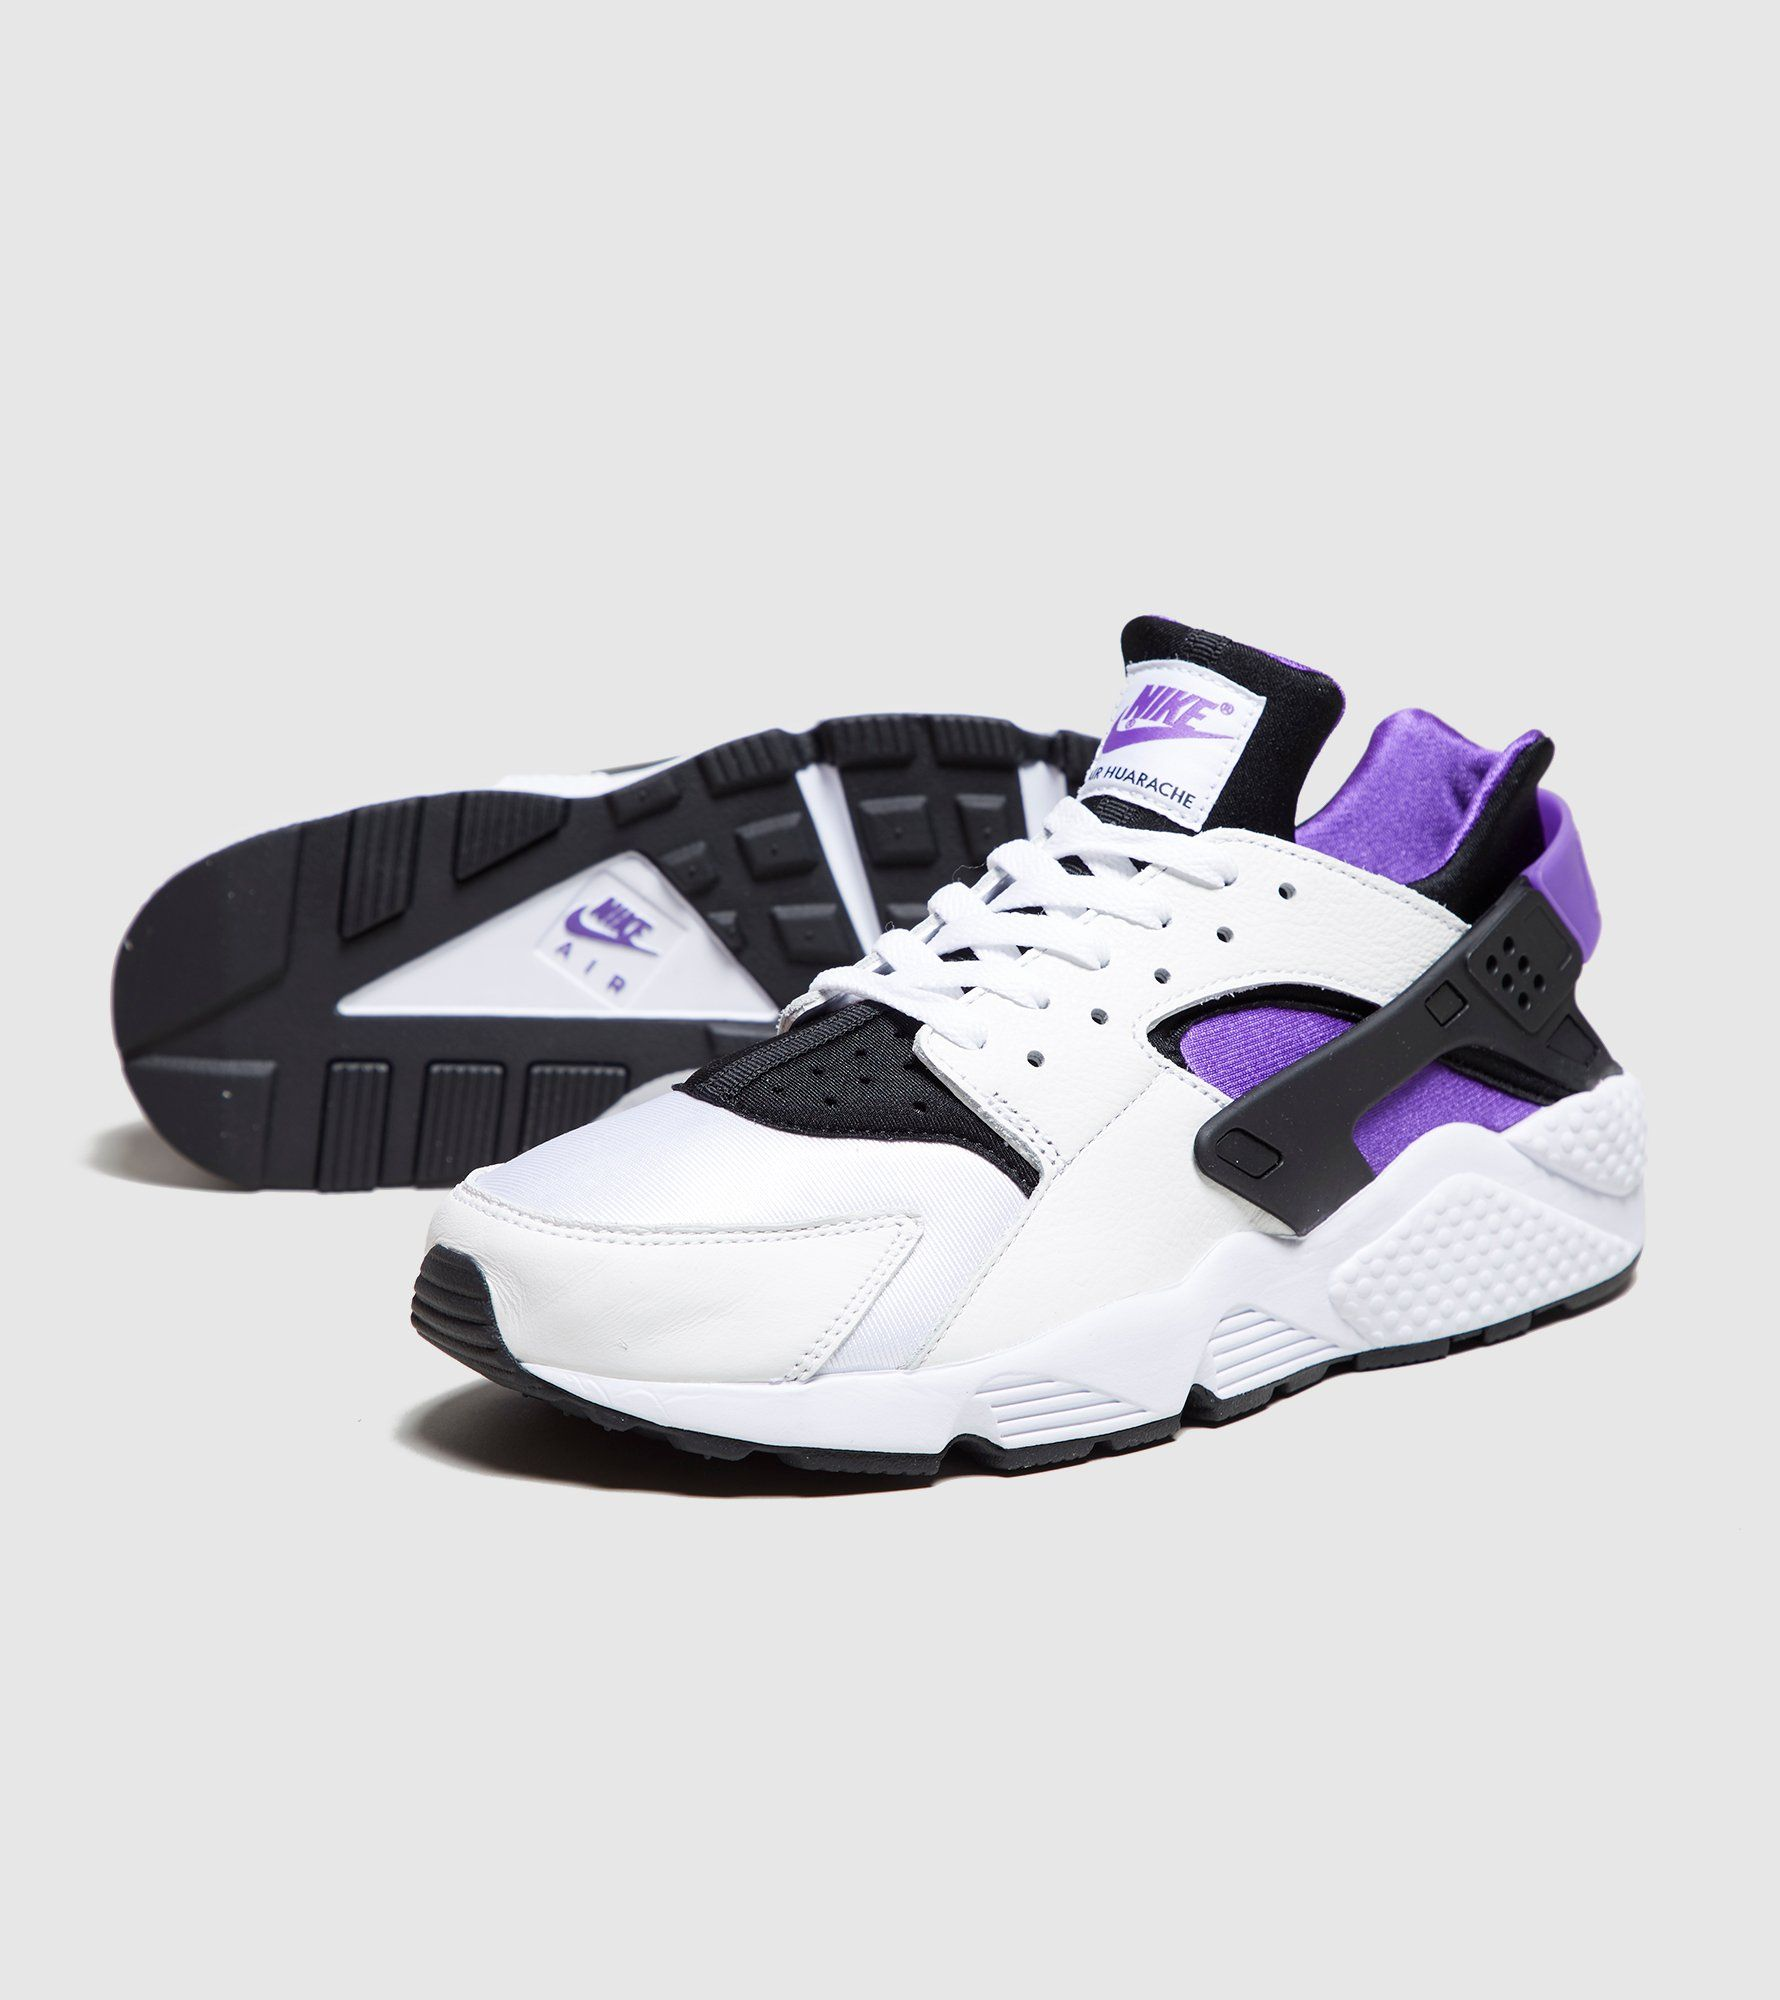 Nike Air Huarache Run 1991